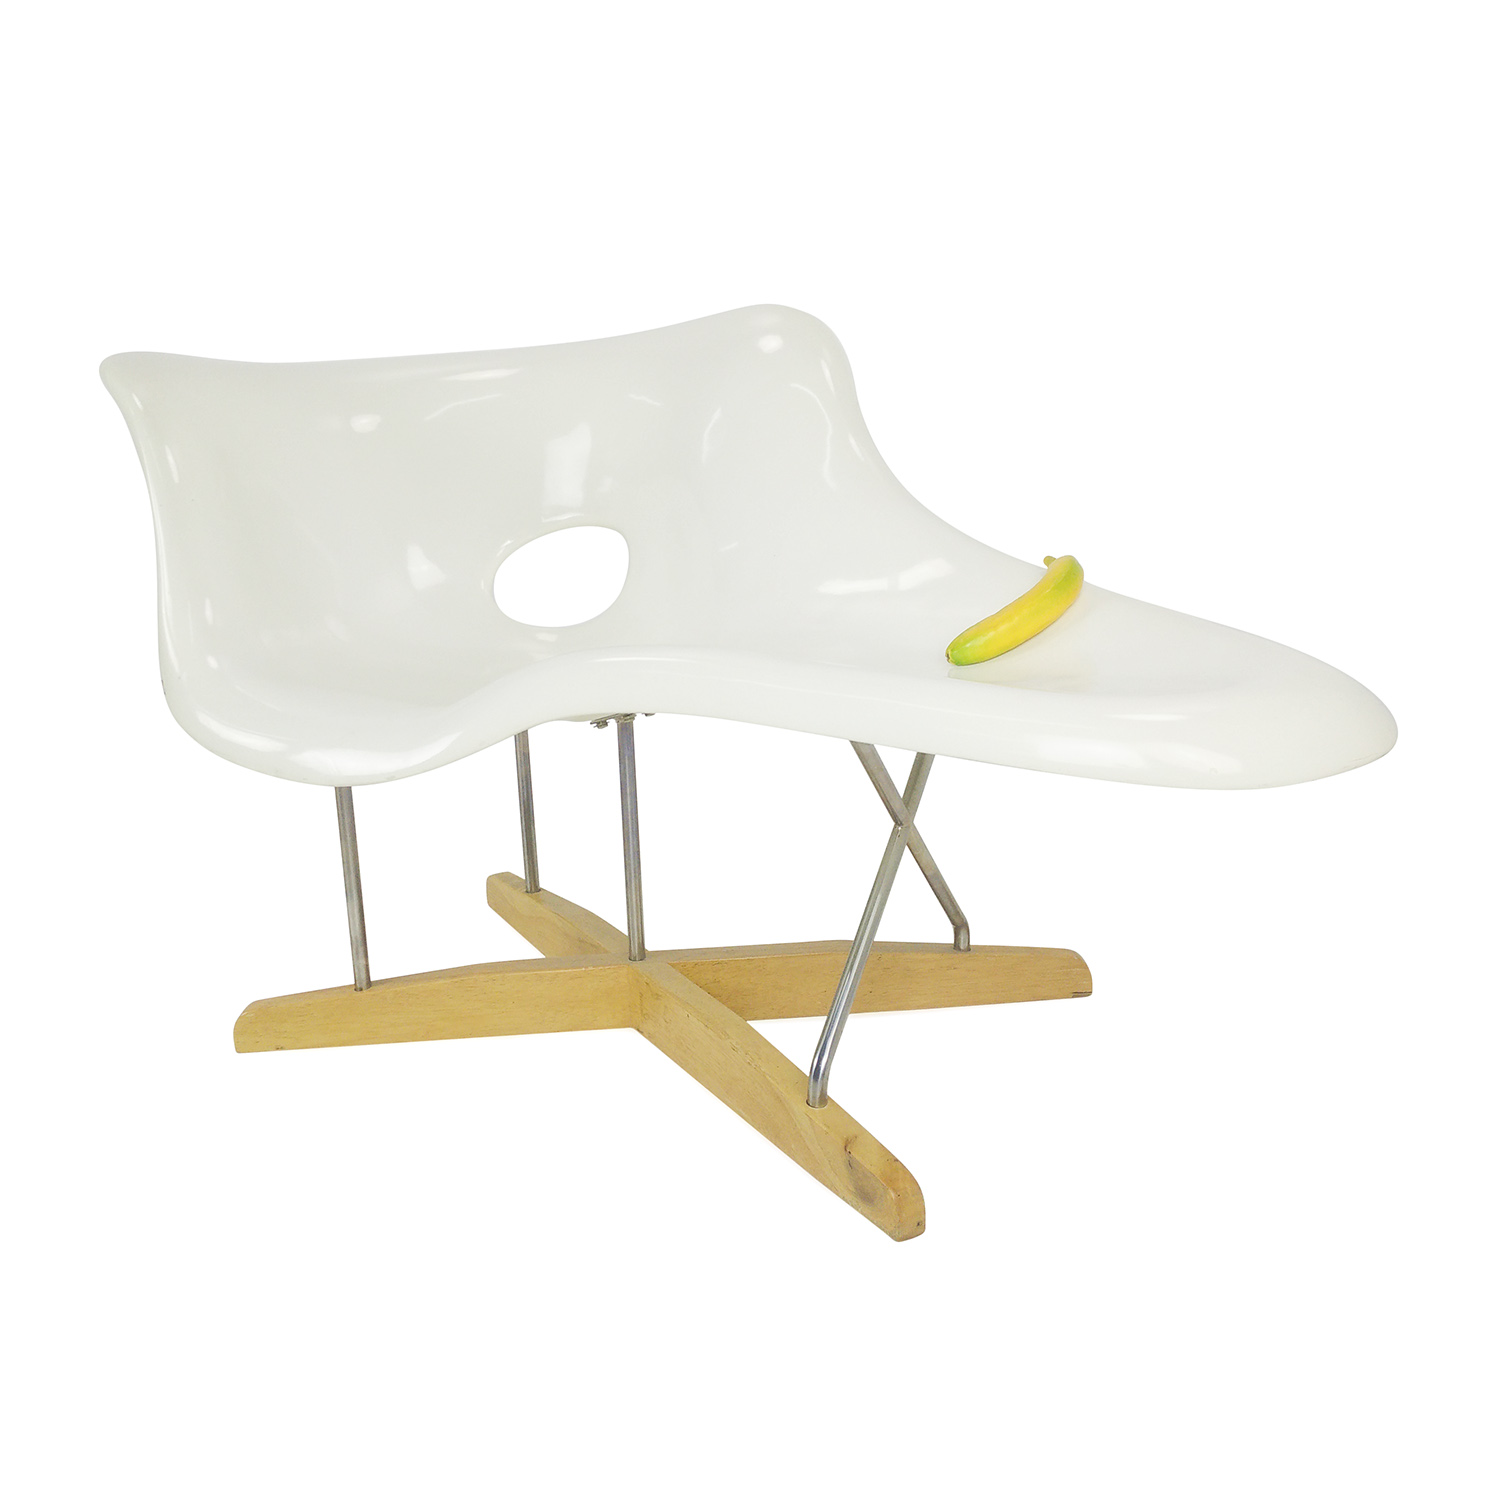 63 off eames replica of la chaise la chaise replica ForImitation Chaise Eames